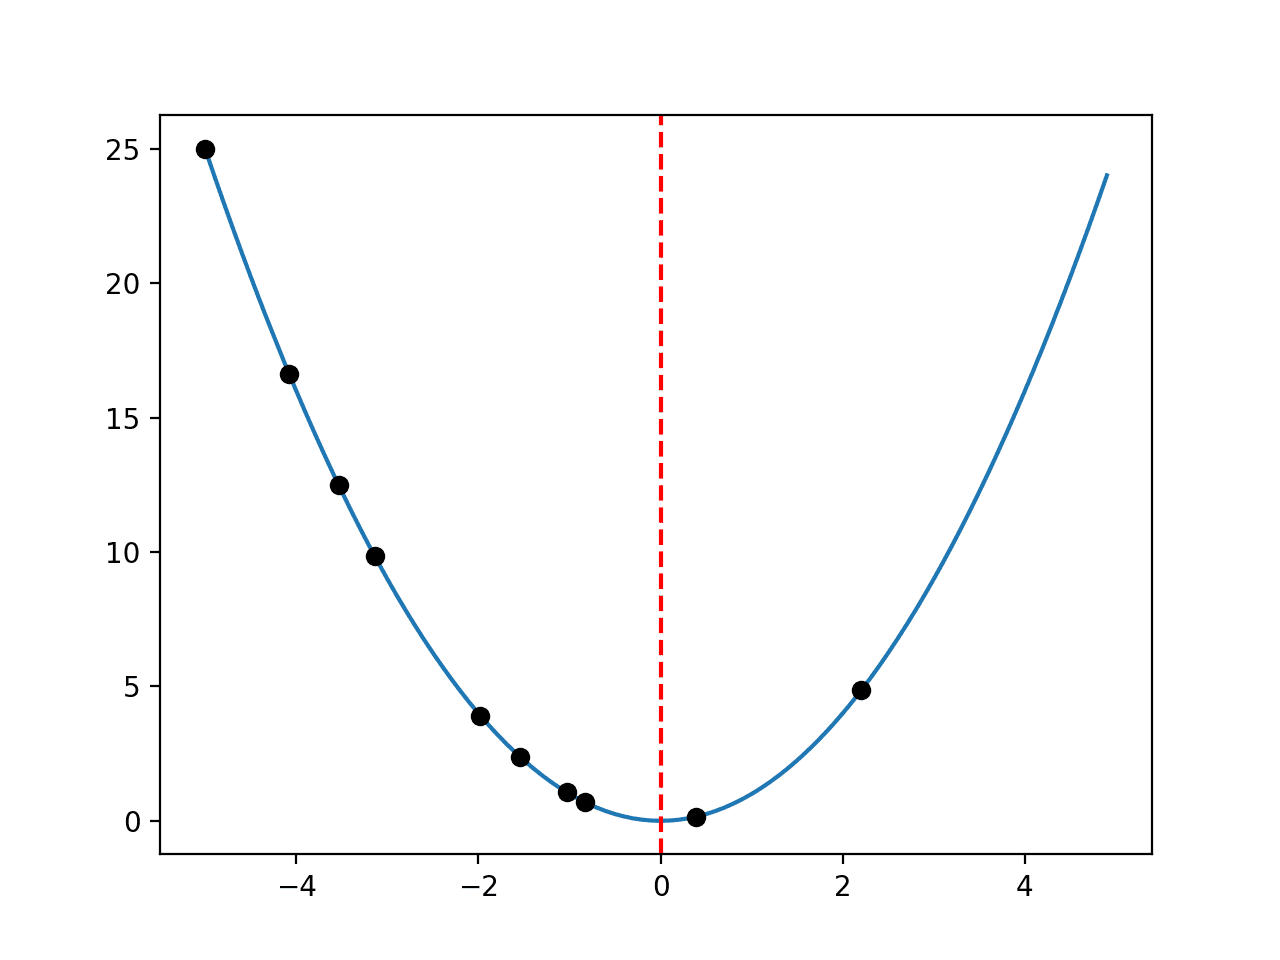 Line Plot of a One-Dimensional Function With Optima Marked by a Red Line and Samples Shown with Black Dots